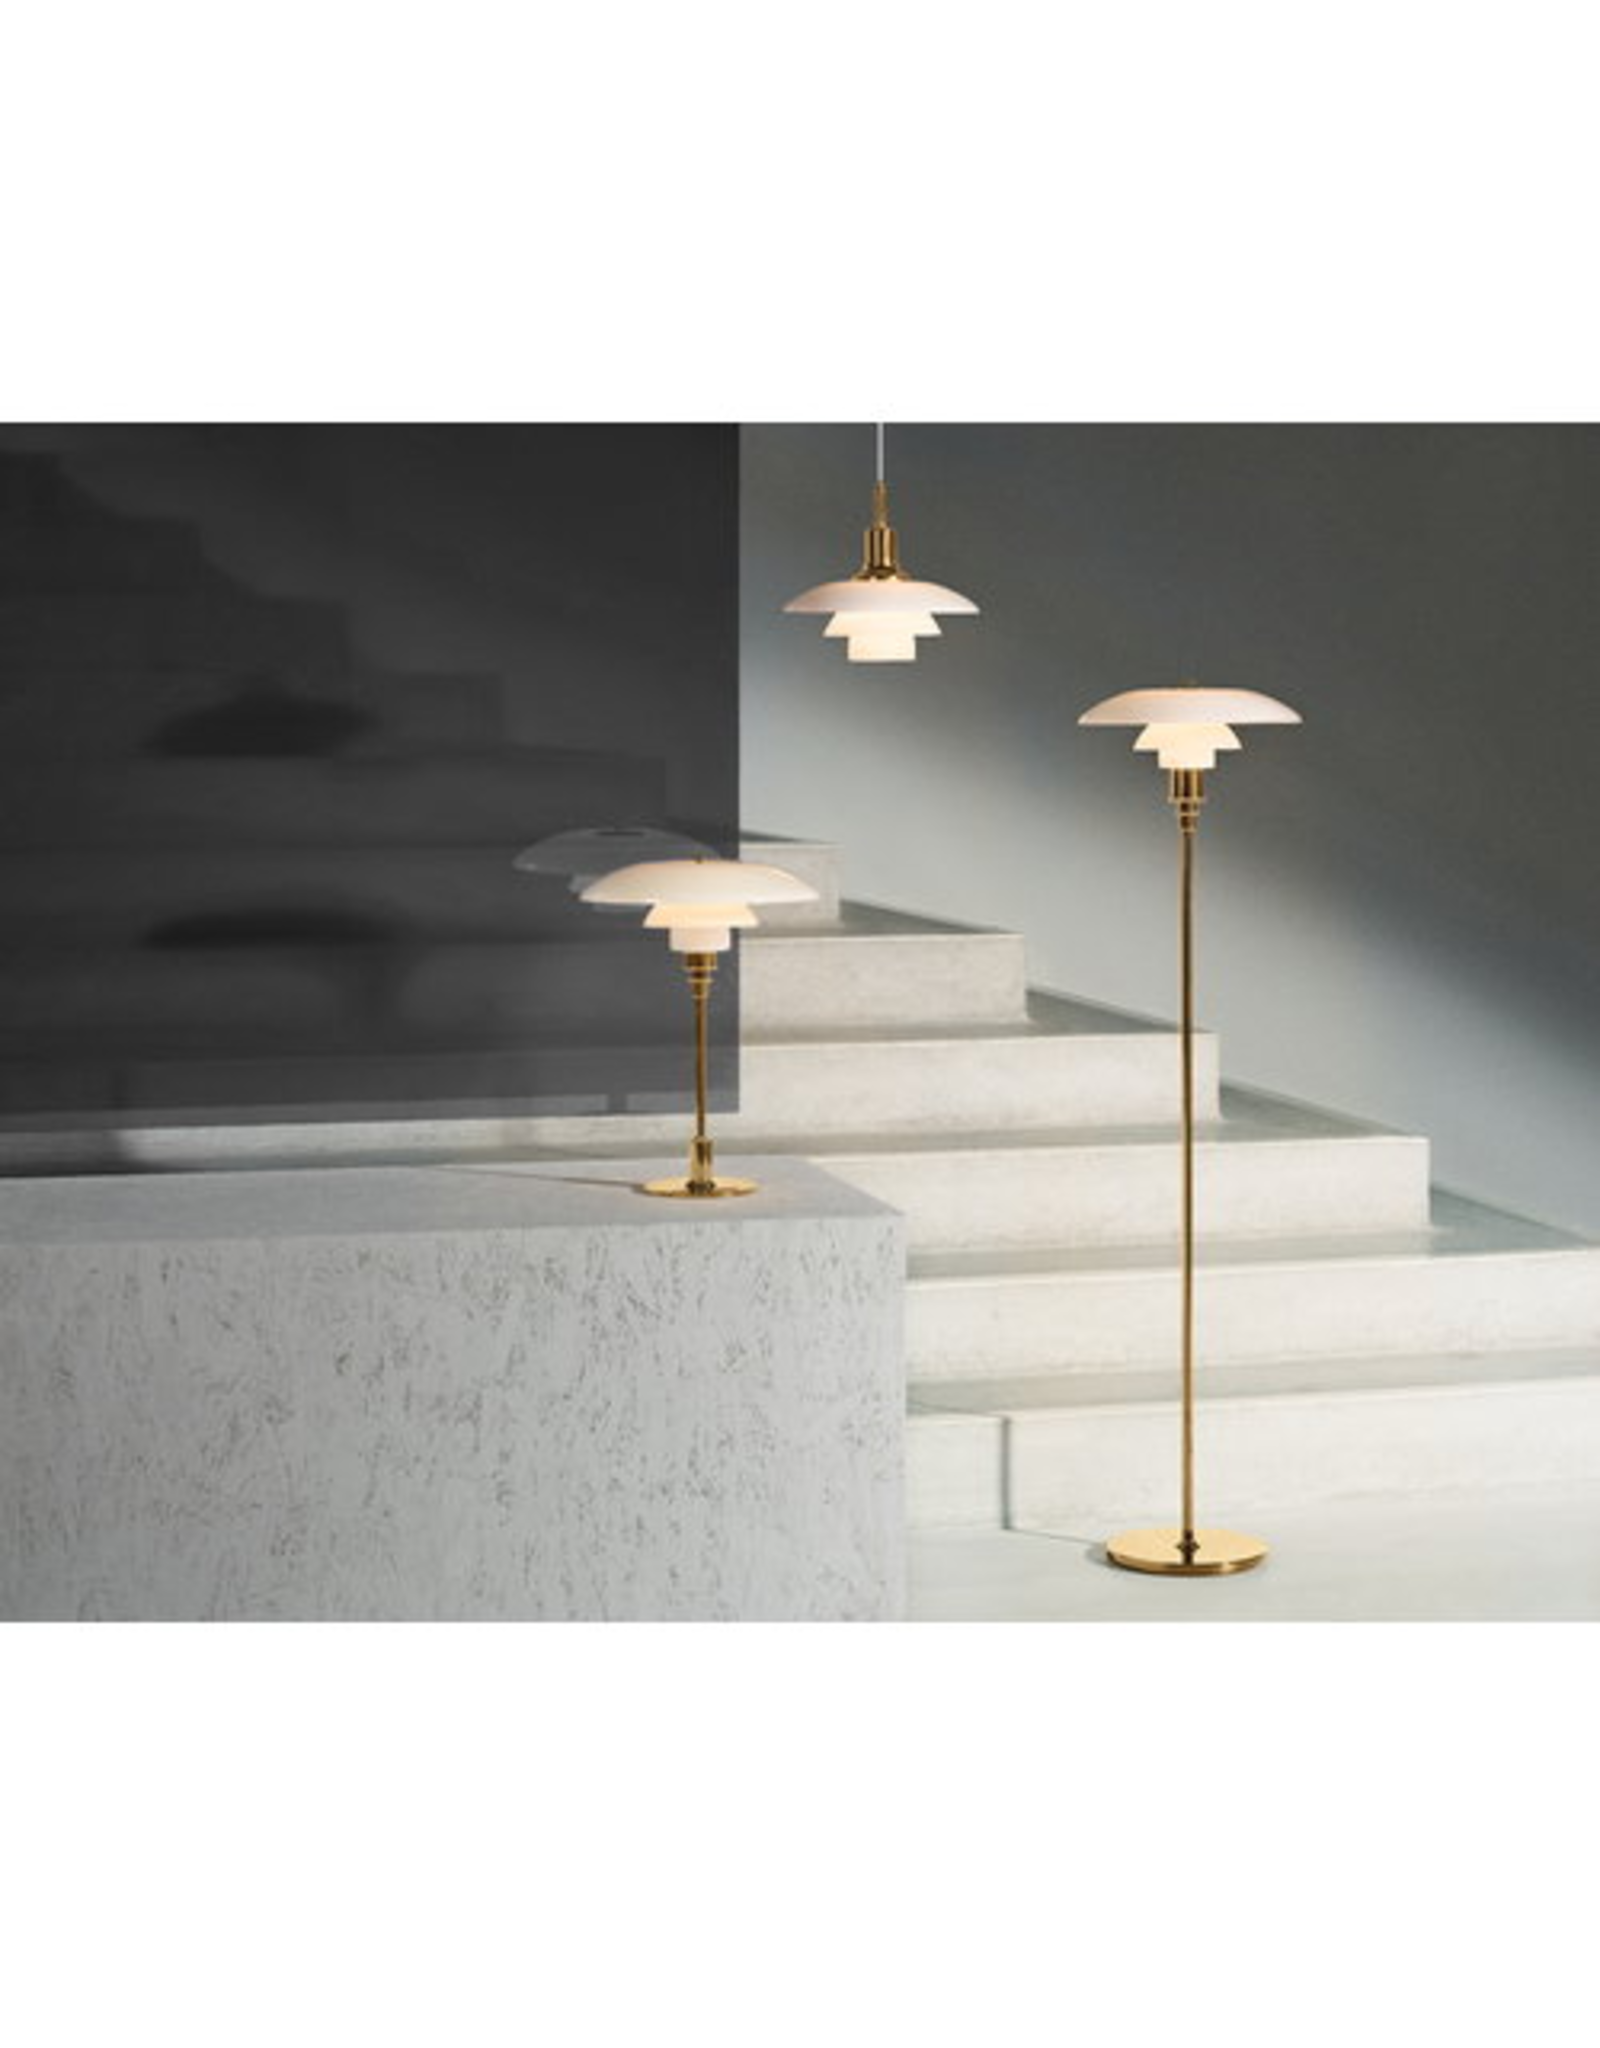 PH 3 1/2-2 1/2 FLOOR LAMP, MOUTH-BLOWN WHITE OPAL GLASS WITH BRASS FINISH